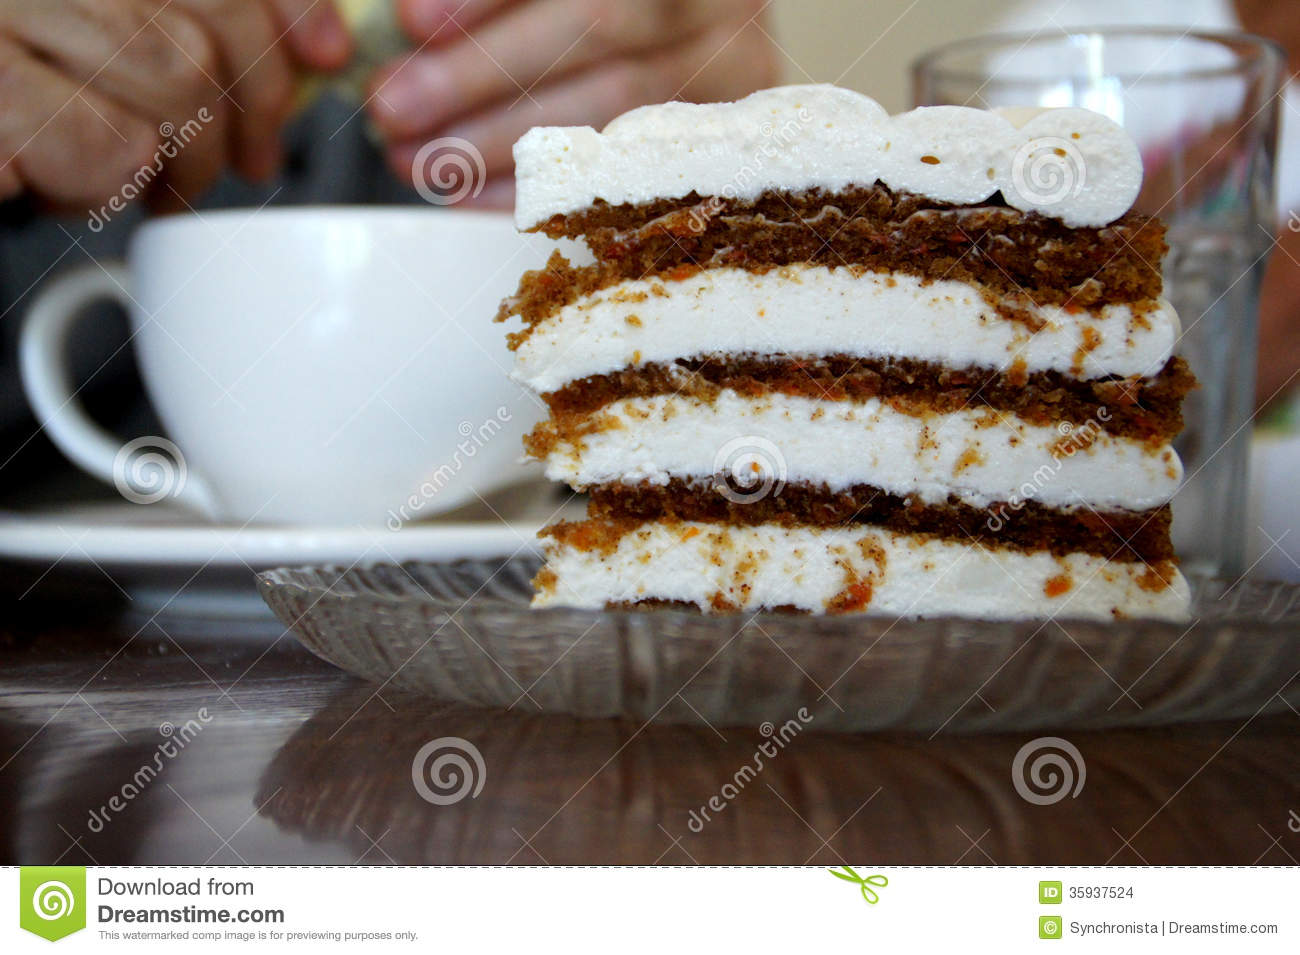 Homemade Carrot Cake Prices